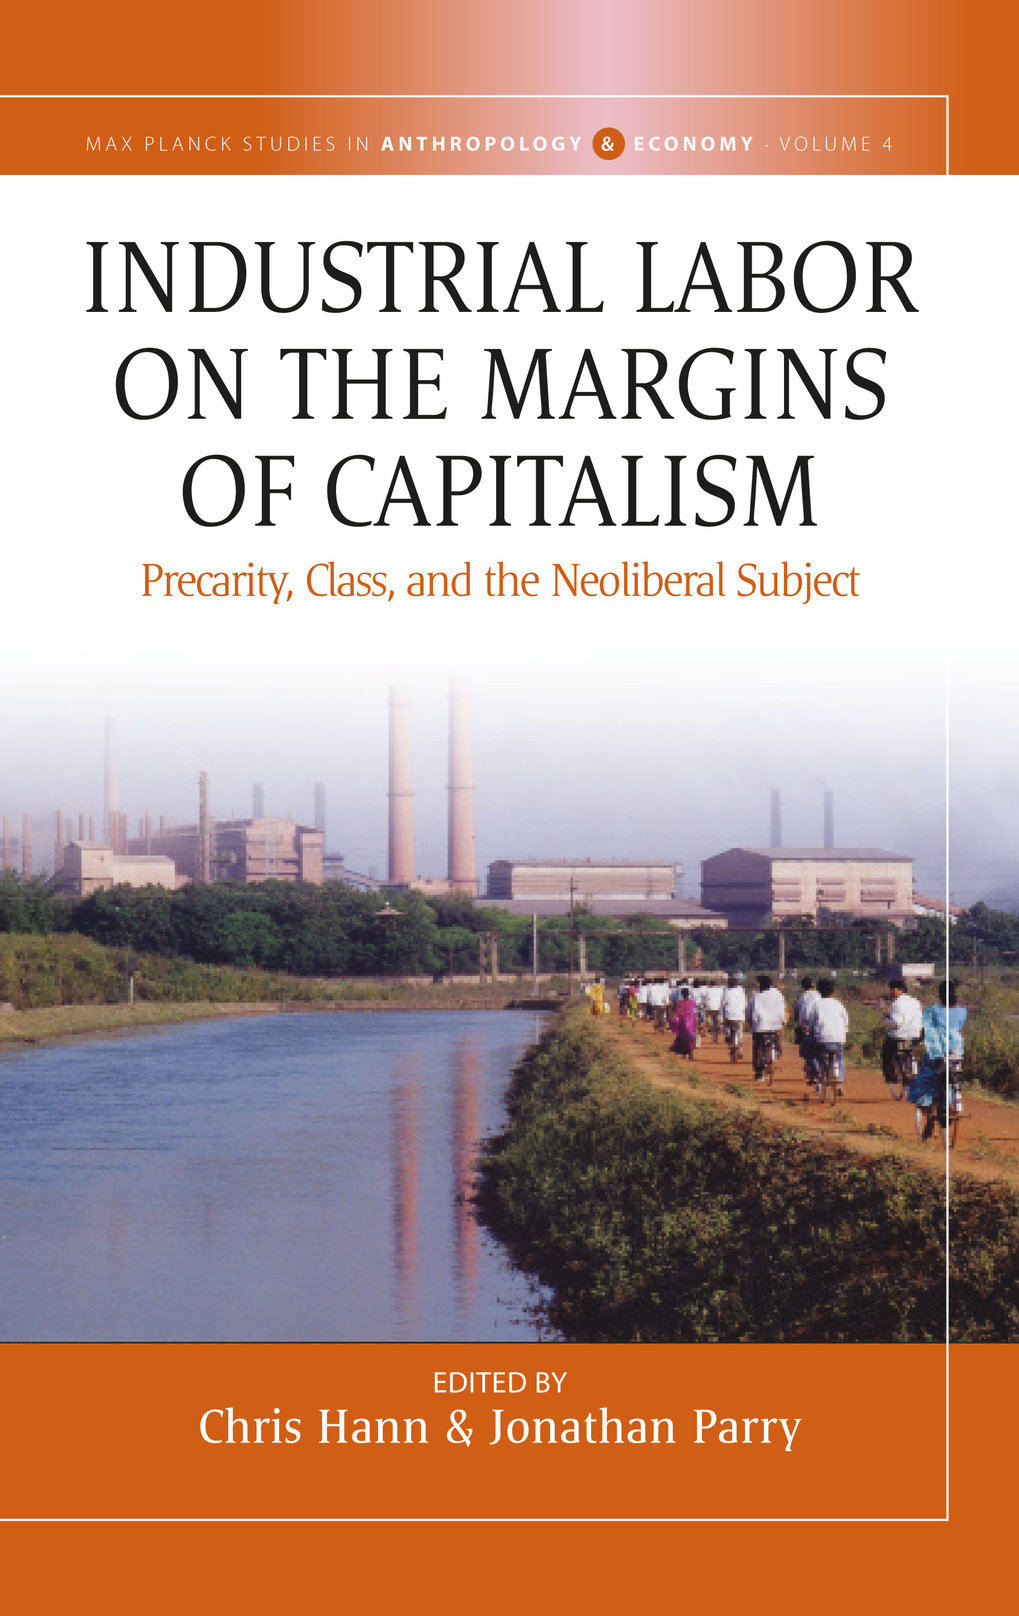 Industrial labor on the margins of capitalism. Precarity, class, and the neoliberal subject